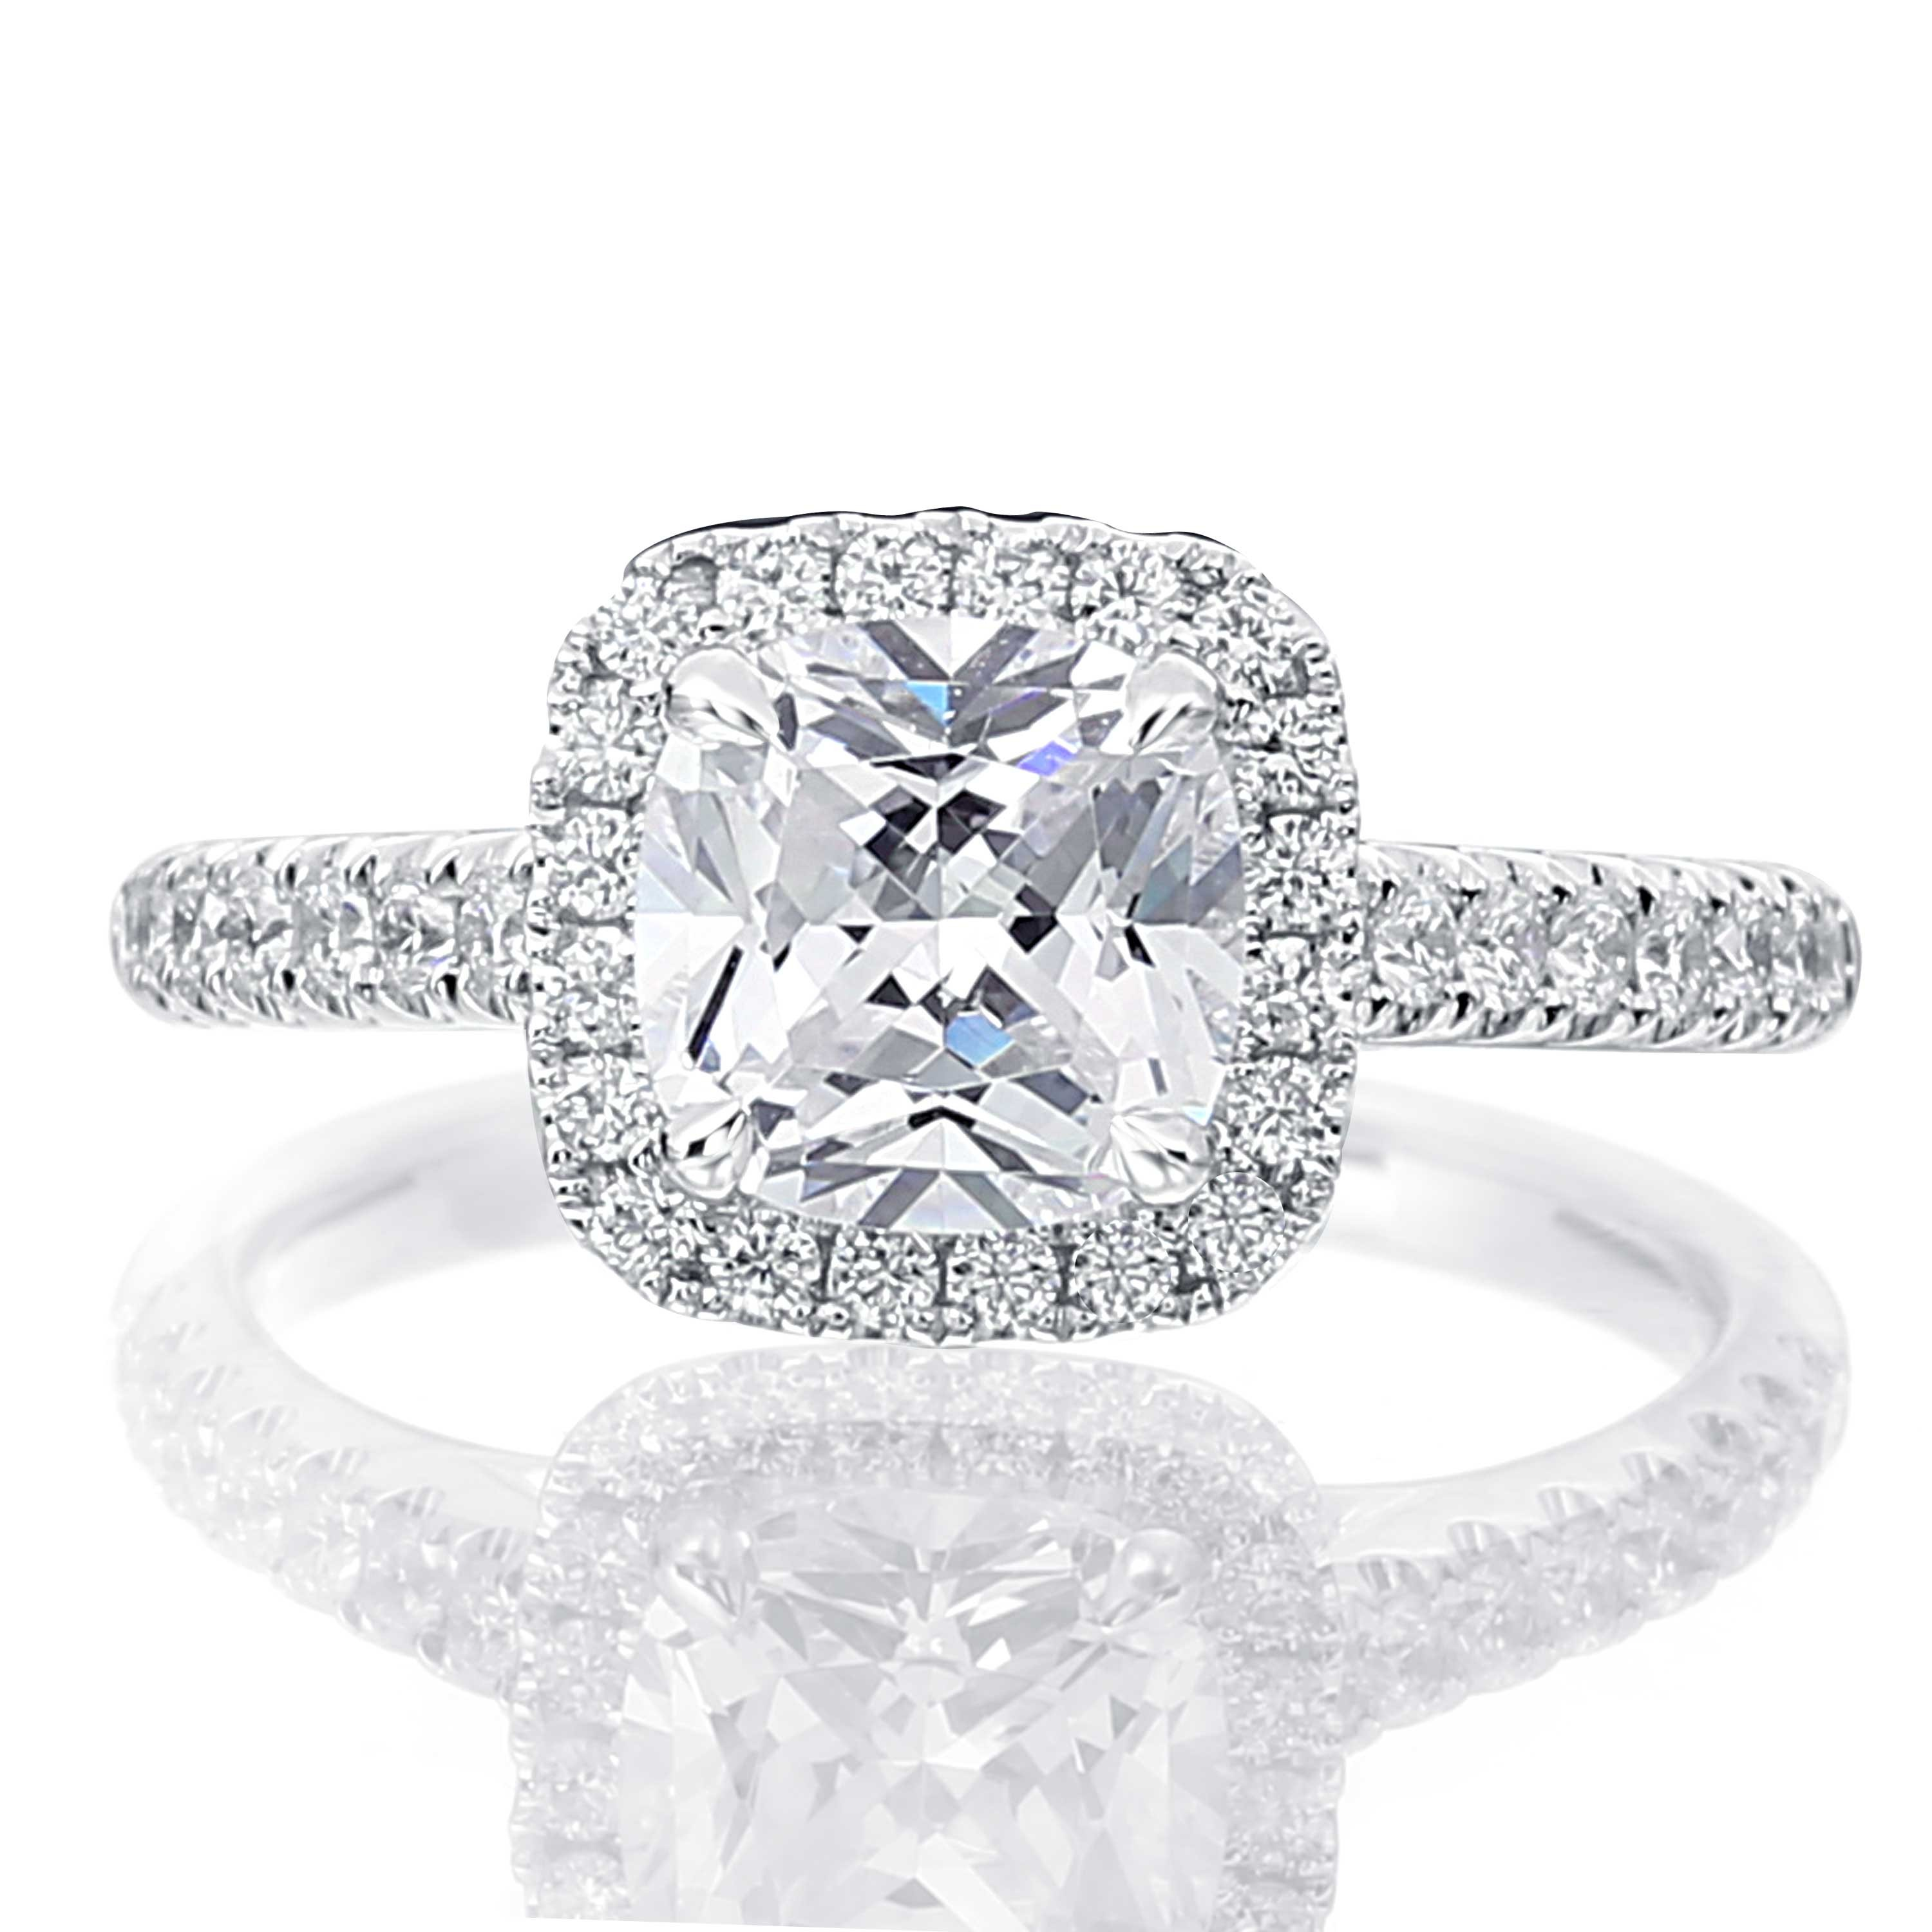 b ring and band en diamond with amorique cut cushion single halo birks engagement angle